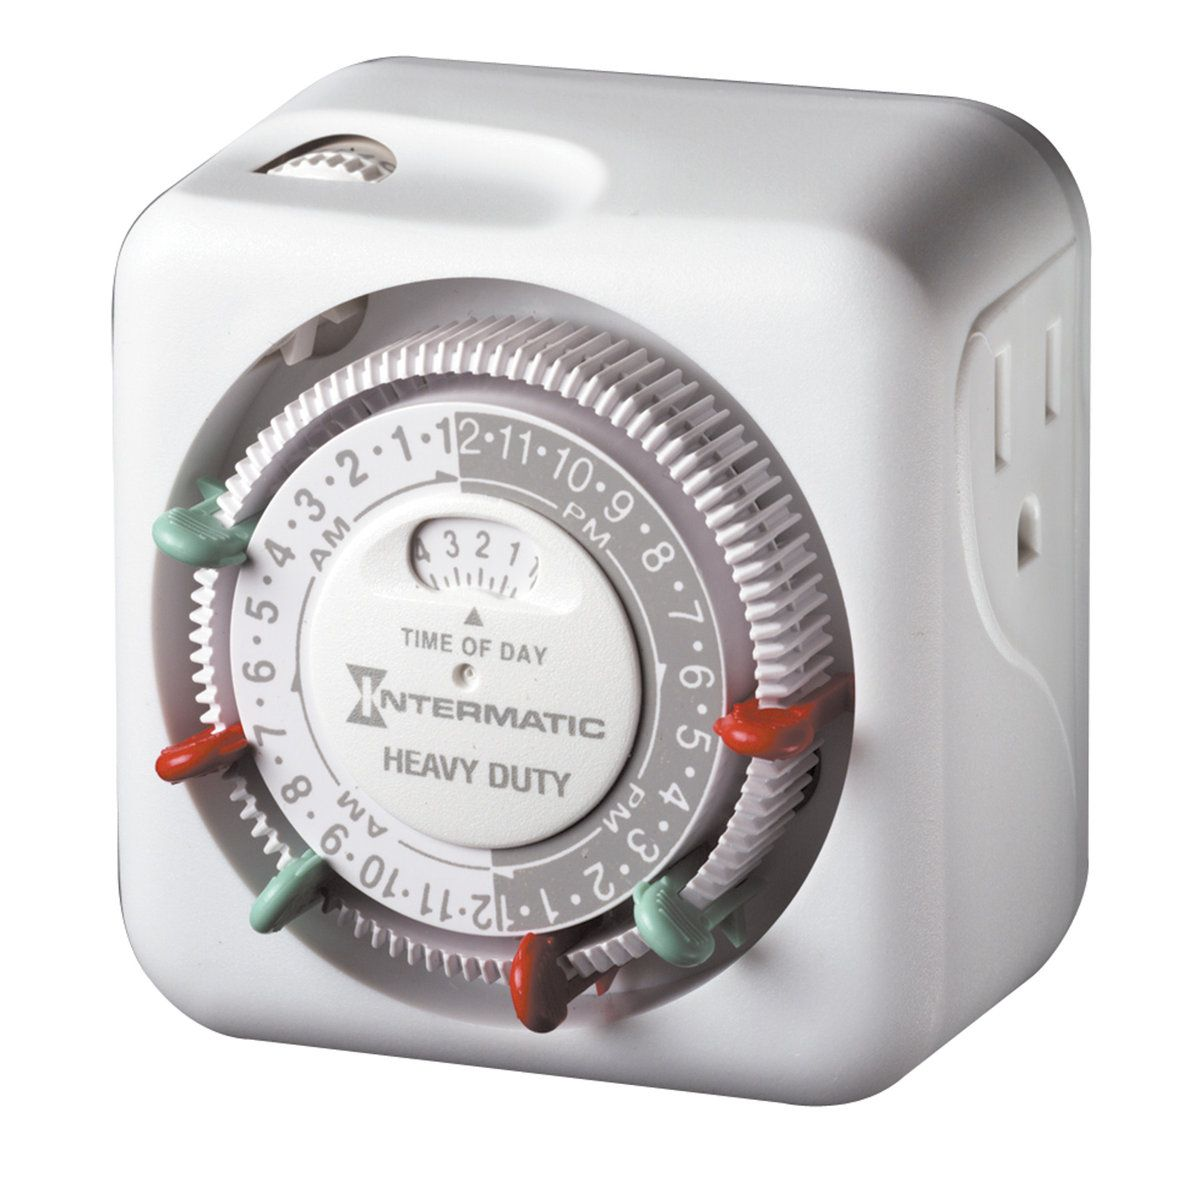 For 15 99 Heavy Duty Grounded Timer Indoor Use Timers With Outdoor Lighting To Ensure Your Lights Turn On At Dusk Timer Home Security Tips Digital Timer